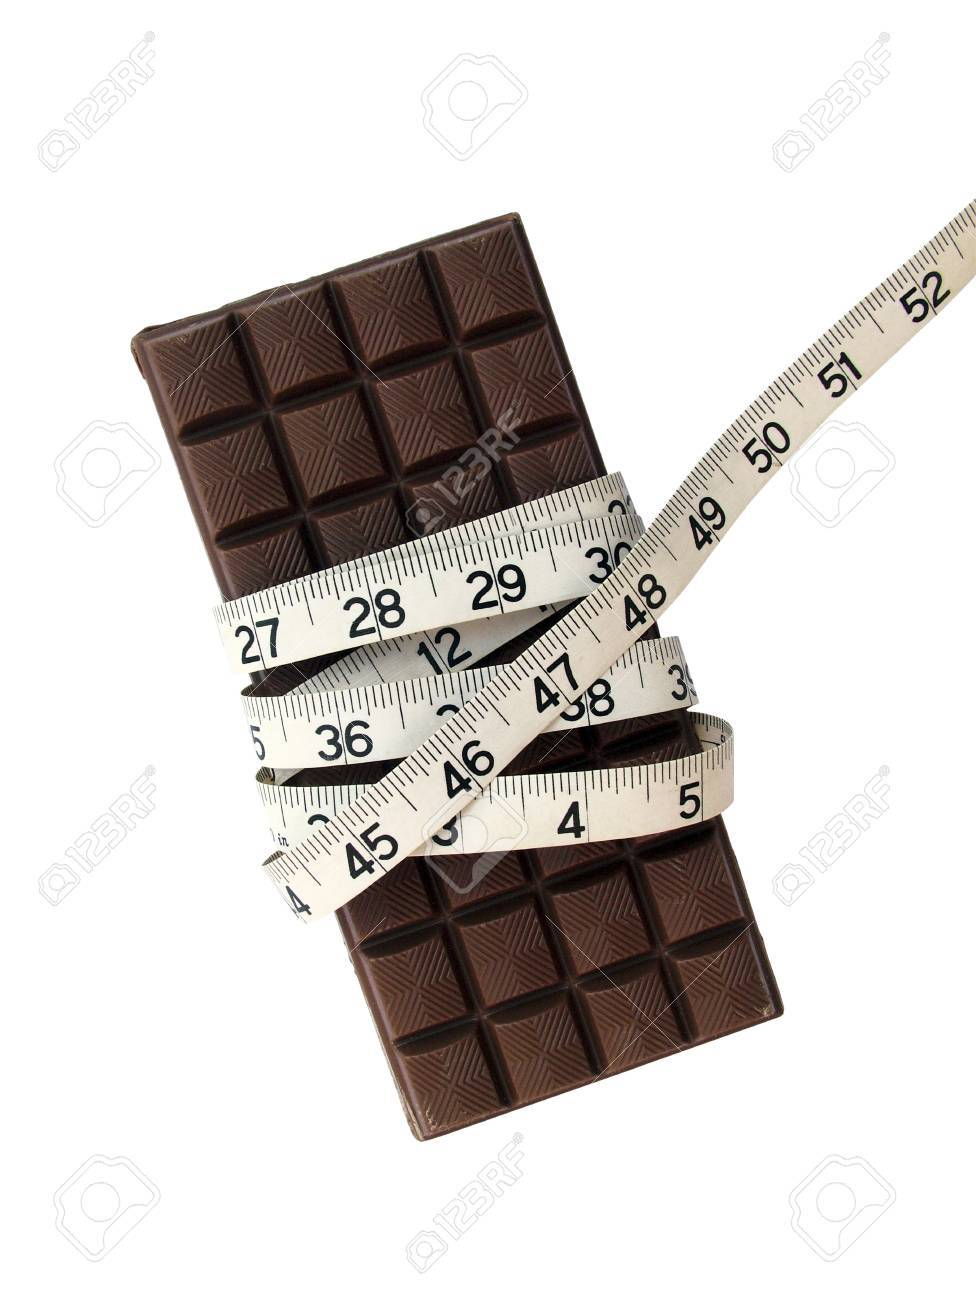 Chocolate And Tape Measure Stock Photo, Picture And Royalty Free ...